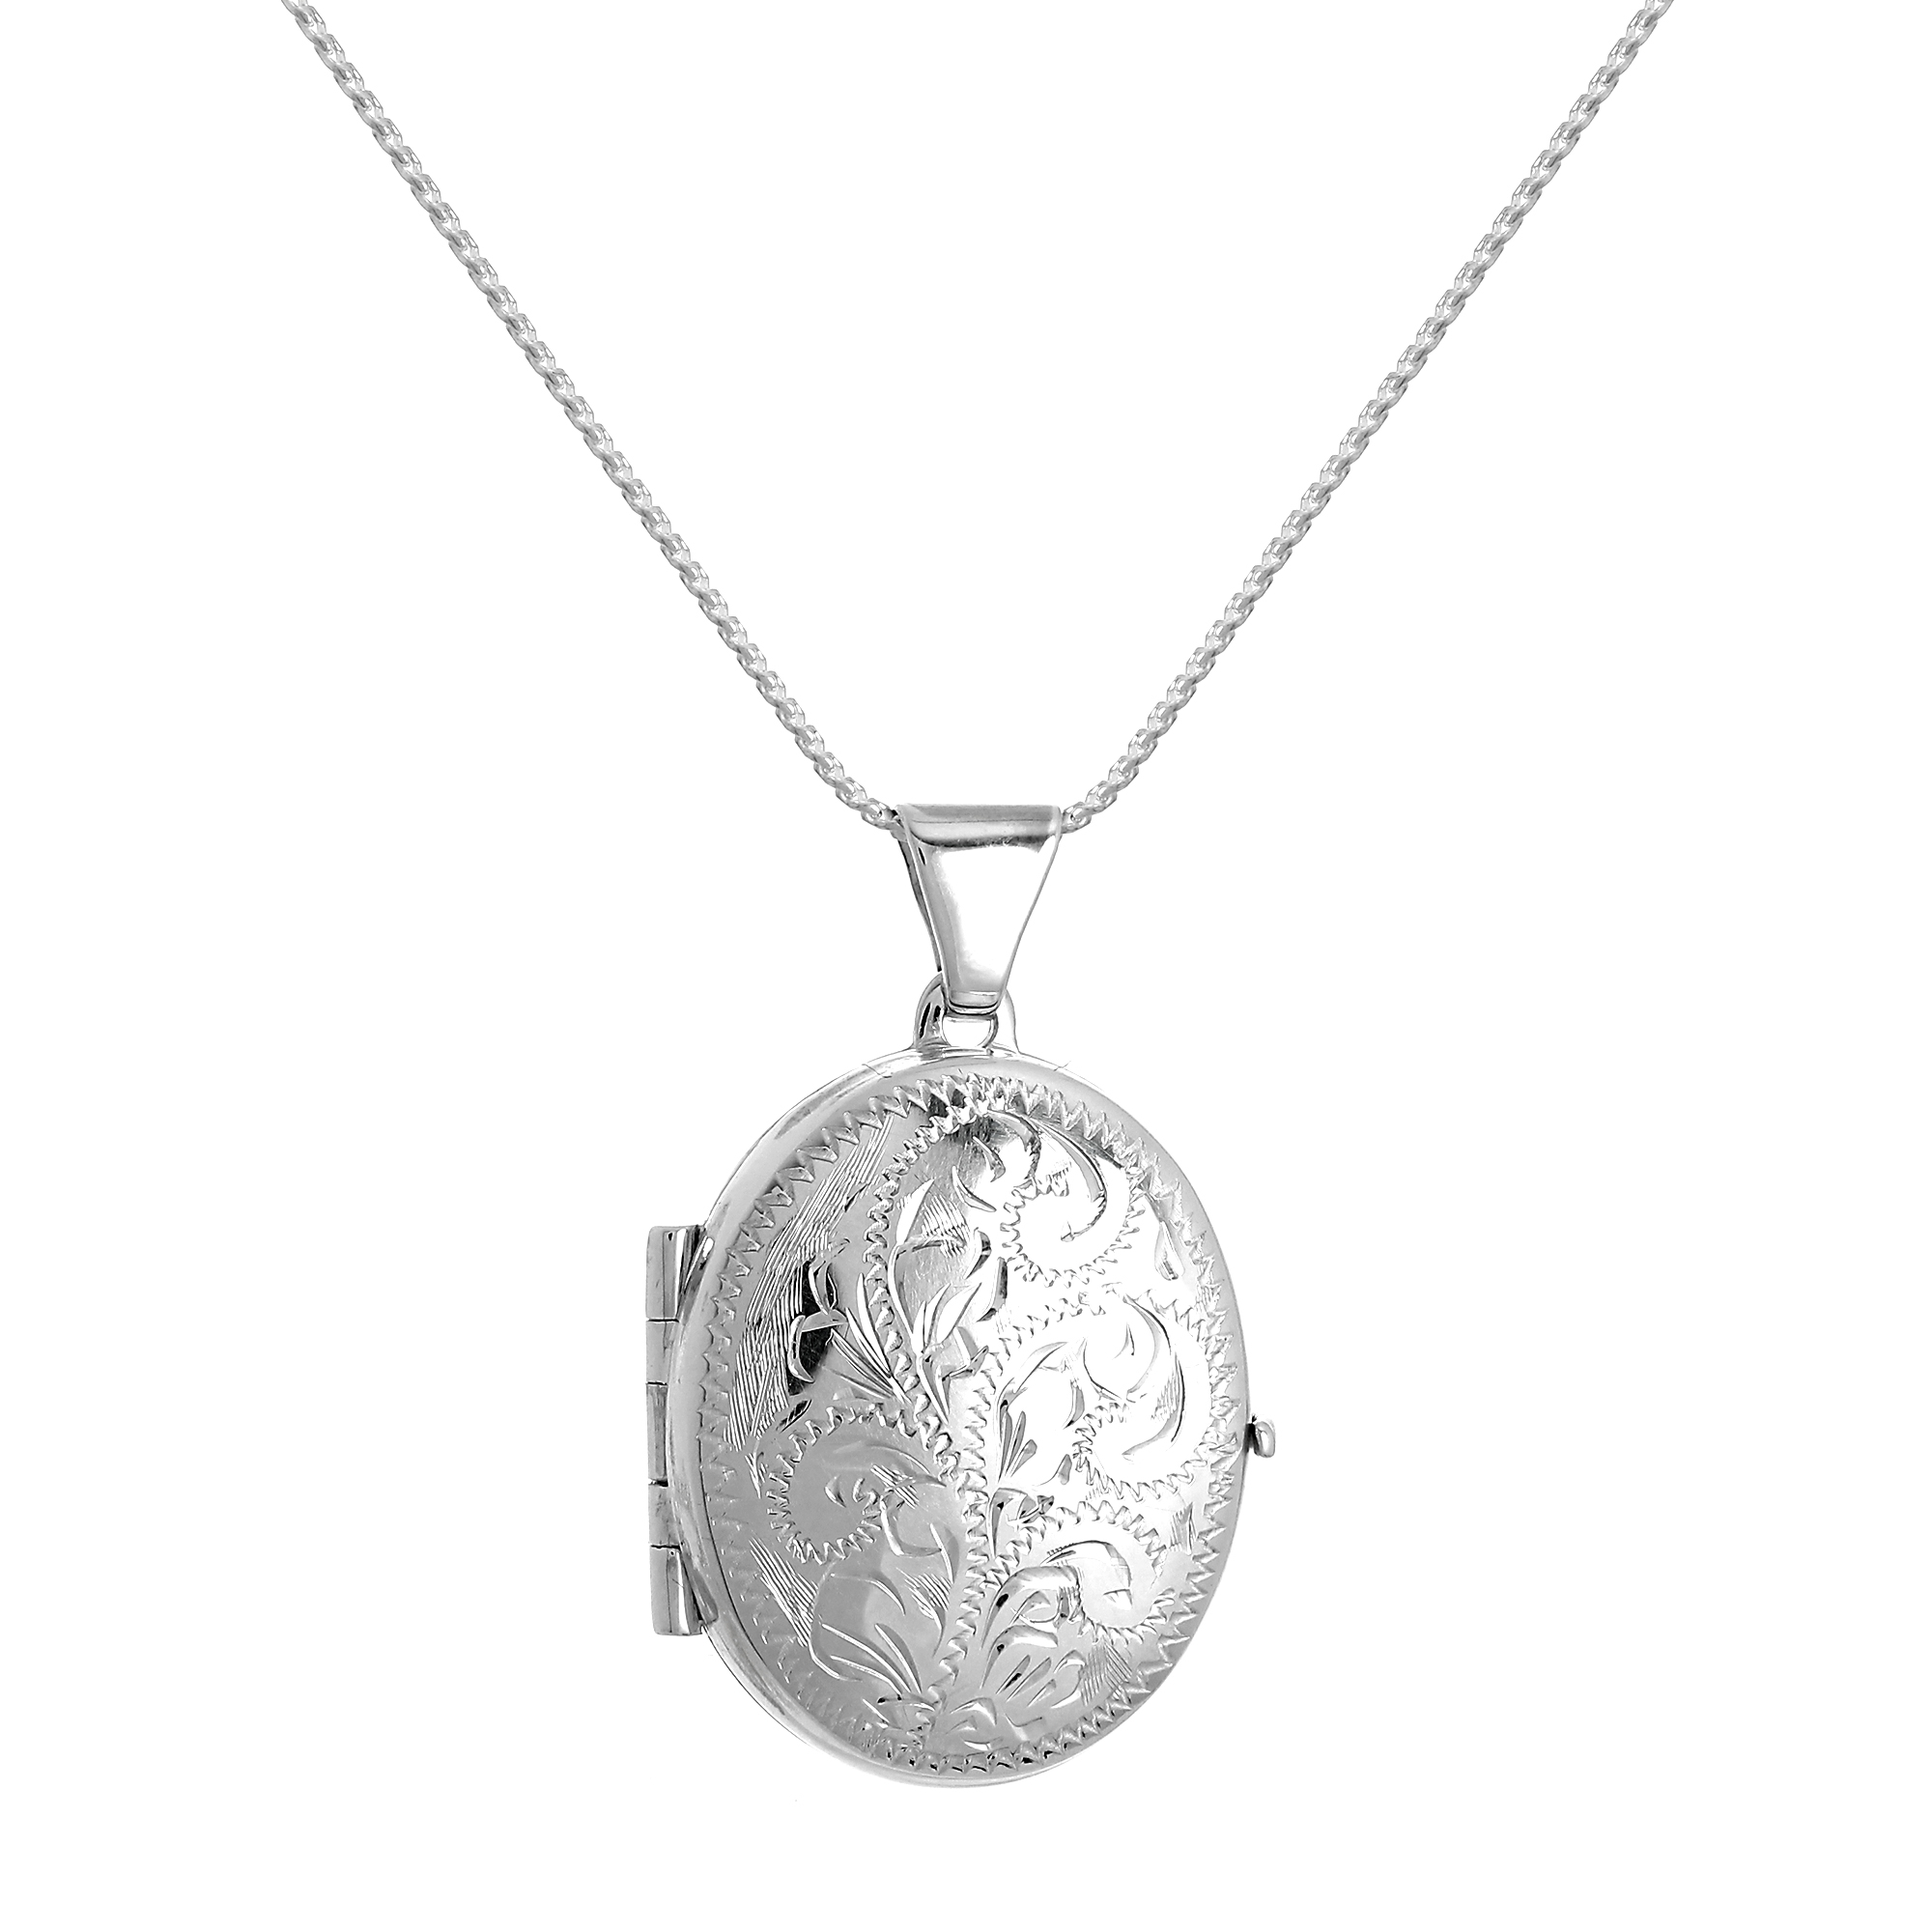 An image of Sterling Silver Engraved Oval 4 Photo Family Locket on 28 Inch Chain